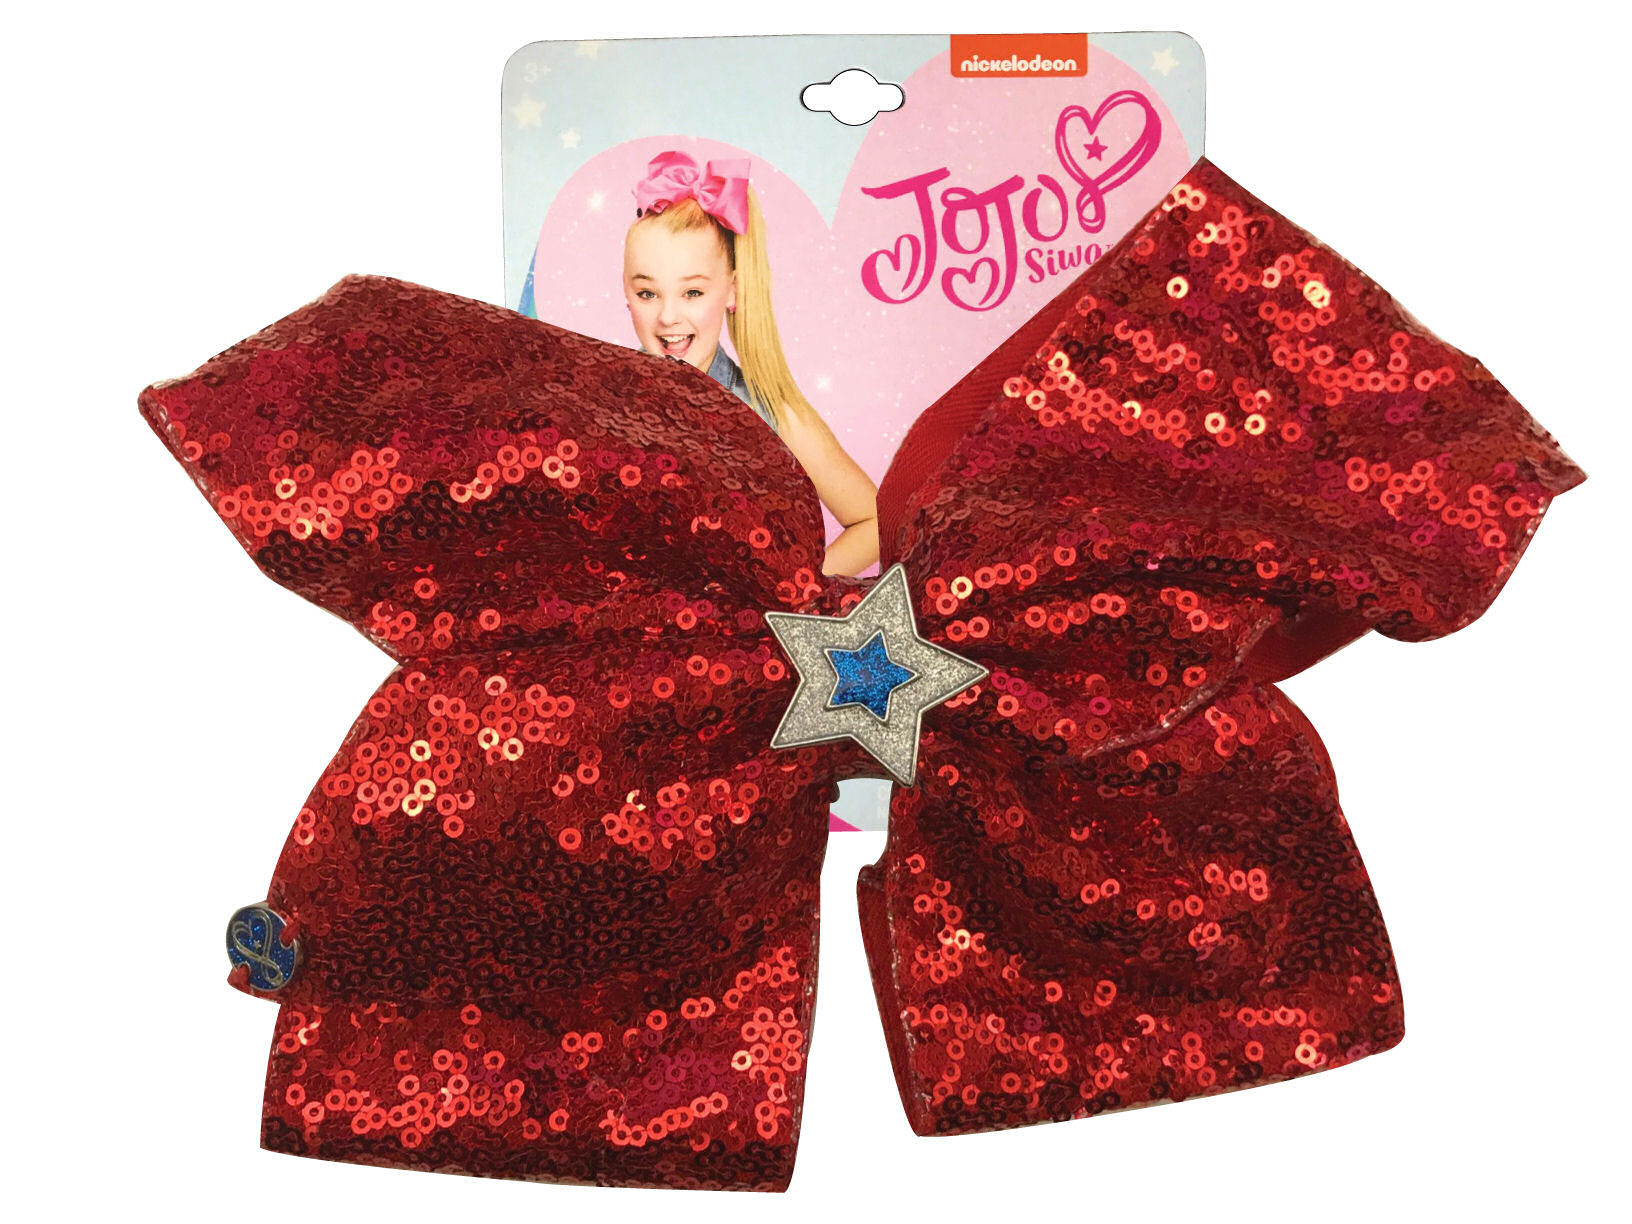 JoJo Siwa Large Cheer Hair Bow (Red Sequined)